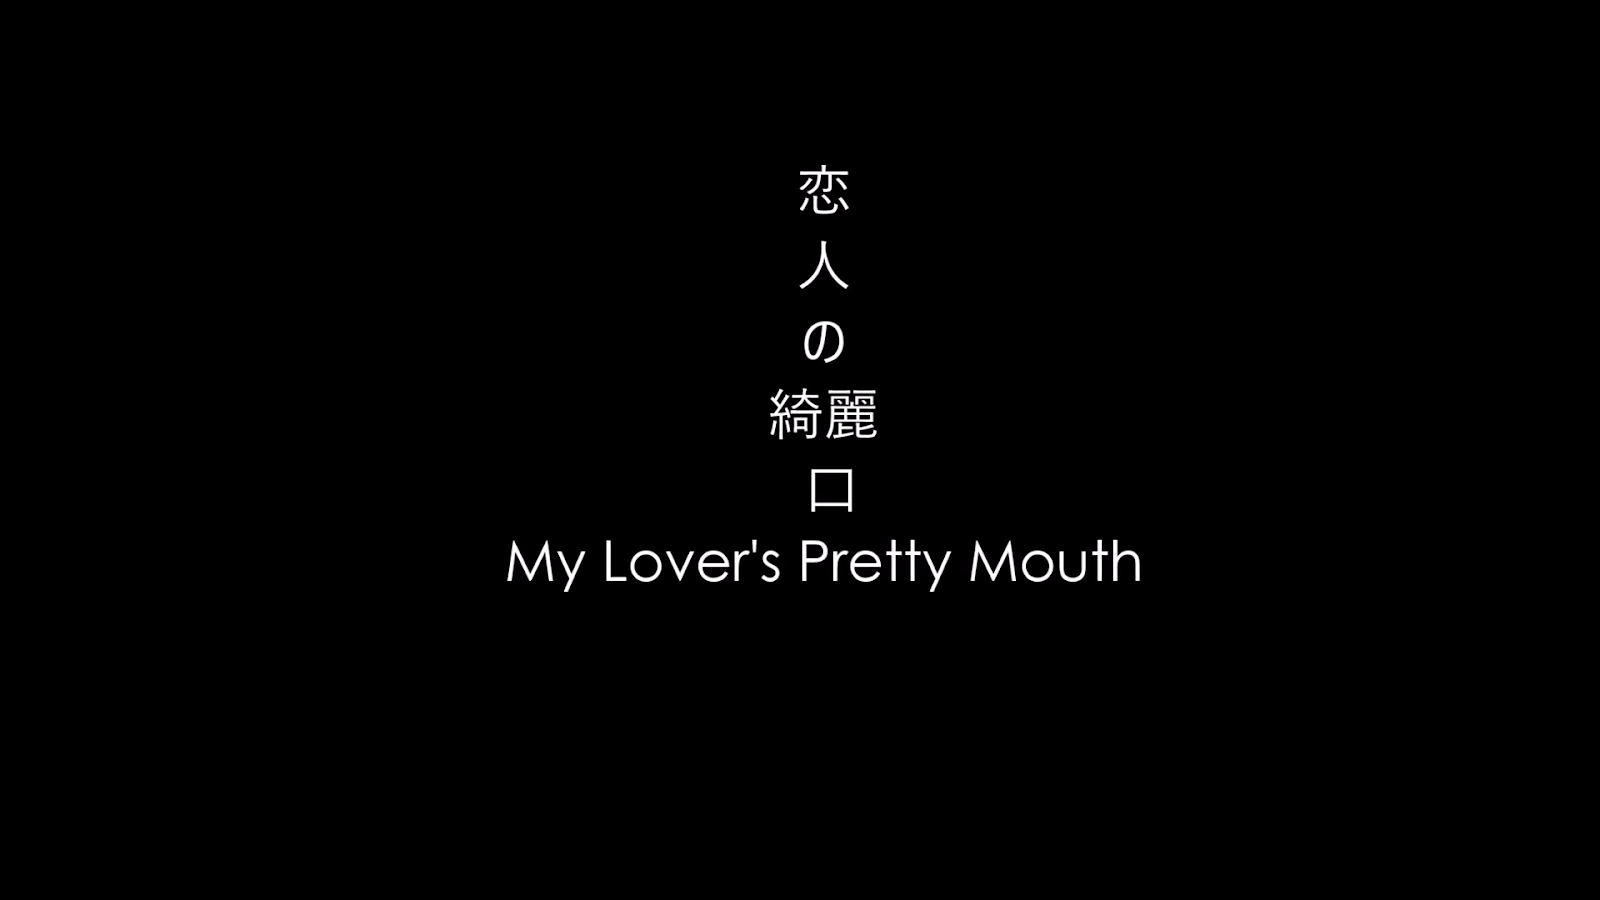 My Lover's Pretty Mouth